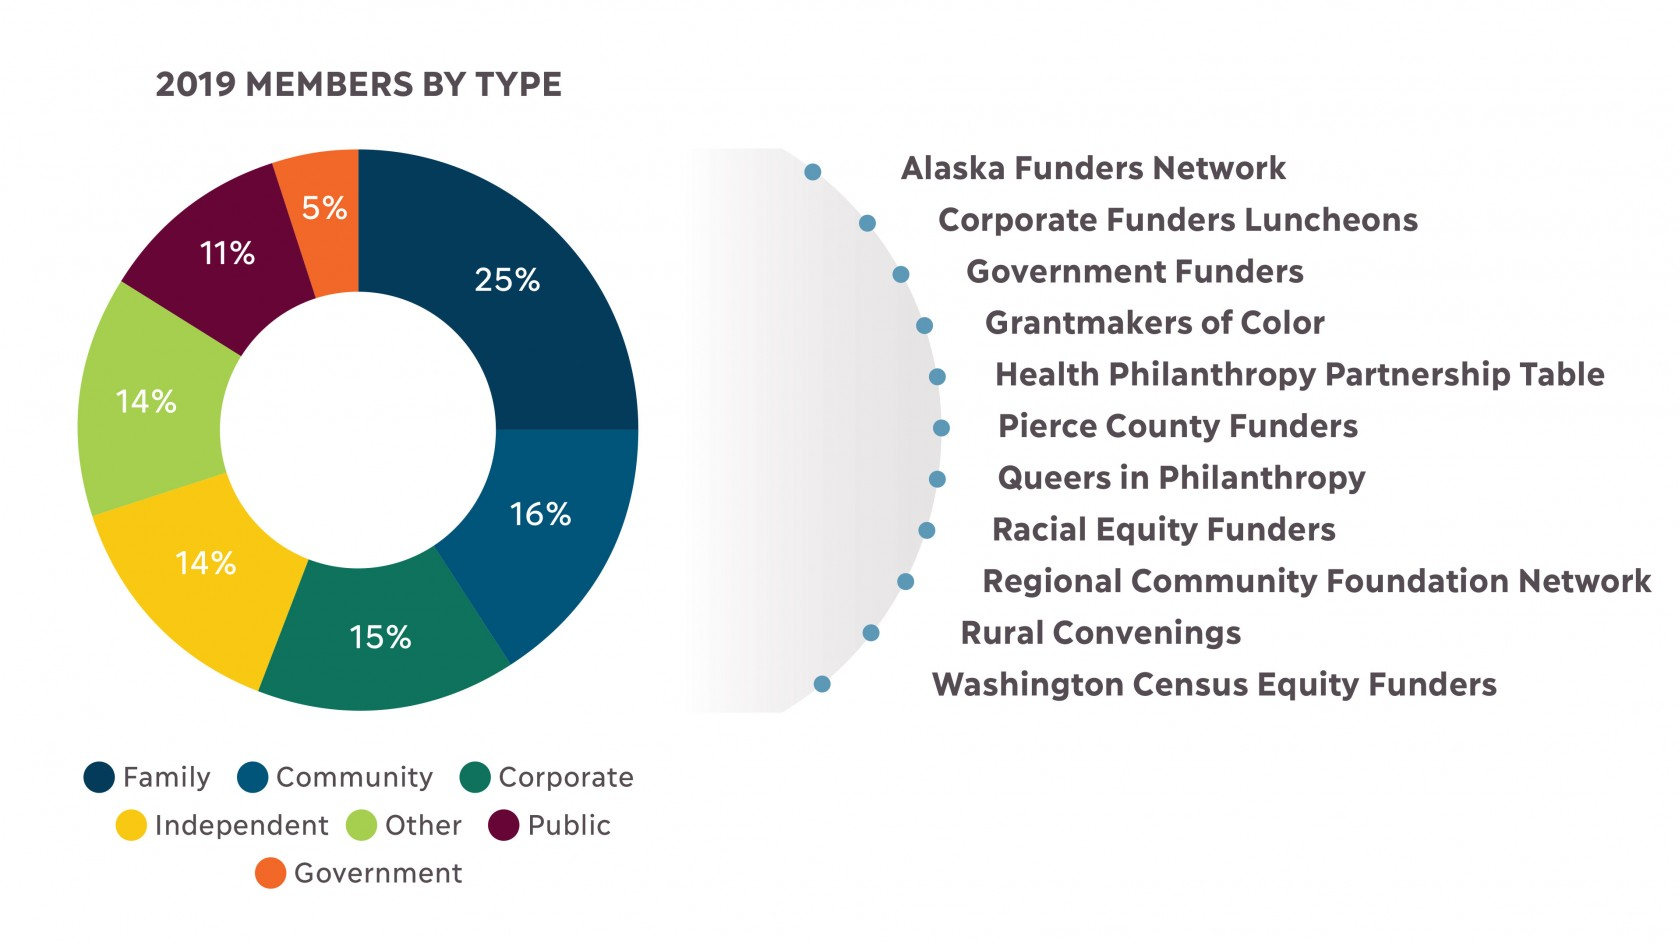 A donut graph of PNW 2019 members by type showing 25% Family foundations; 16% Community foundations; 15% Corporate foundations; 14% Independent foundations; 14% Other; 11% Public; 5% Government